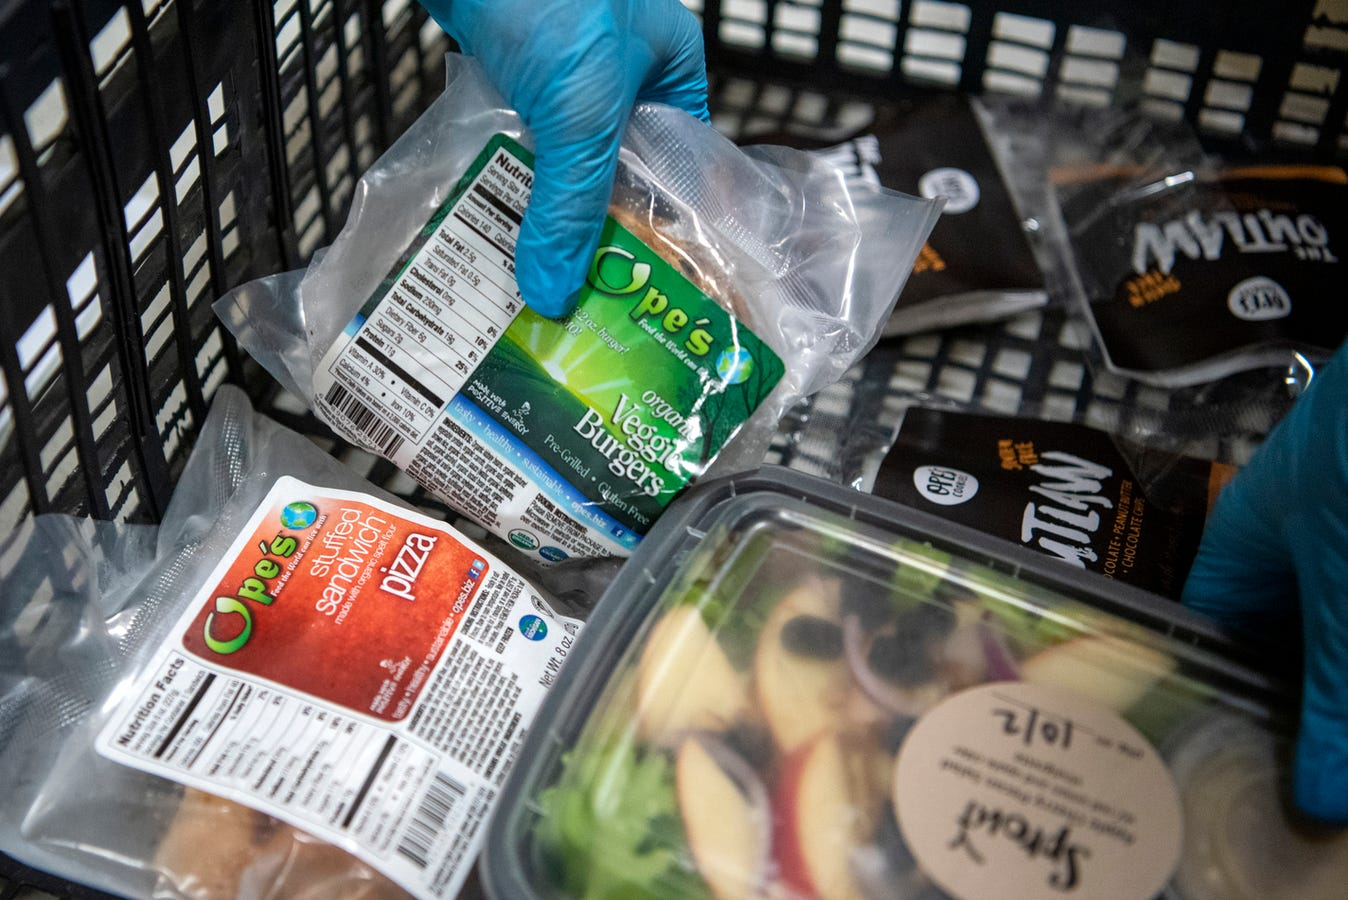 Volunteers assemble grocery orders, some with meat alternatives, on Wednesday, Oct. 2, 2019 at Sprout in Battle Creek, Mich. The nonprofit Sprout sells customized grocery orders of locally sourced products.